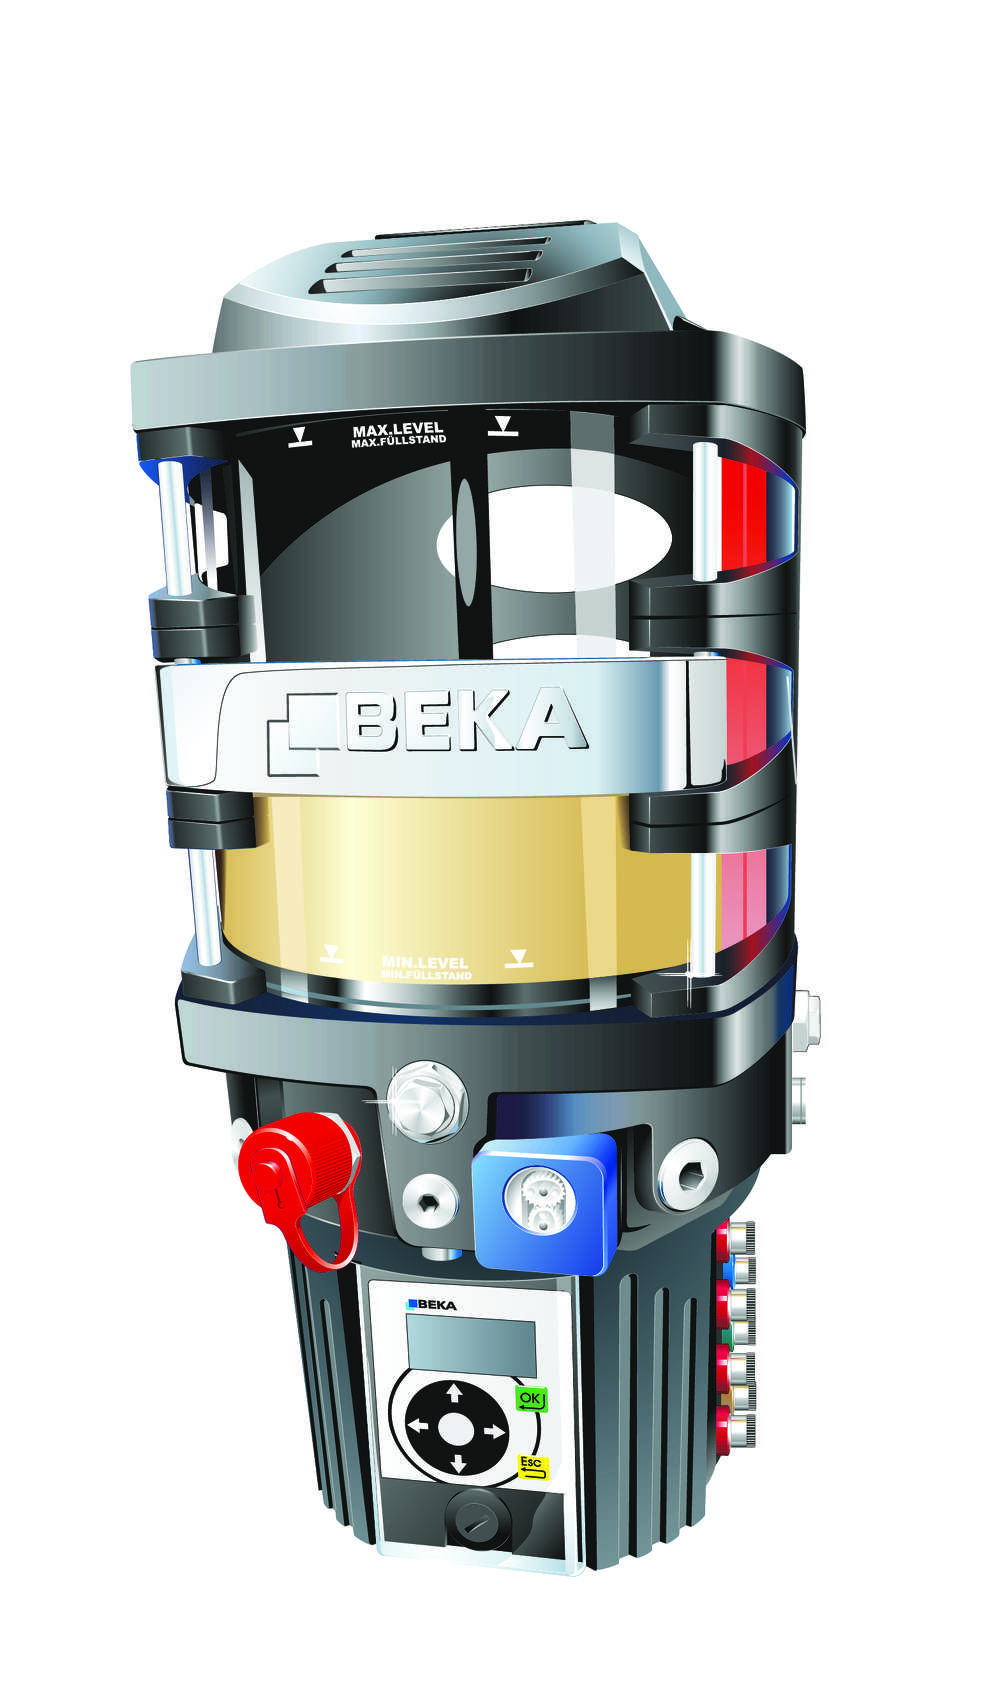 A GIGA Plus is like having three pumps in one: it has three independent outlets for lubricant supply that are tied together by internal channels within the pump housing